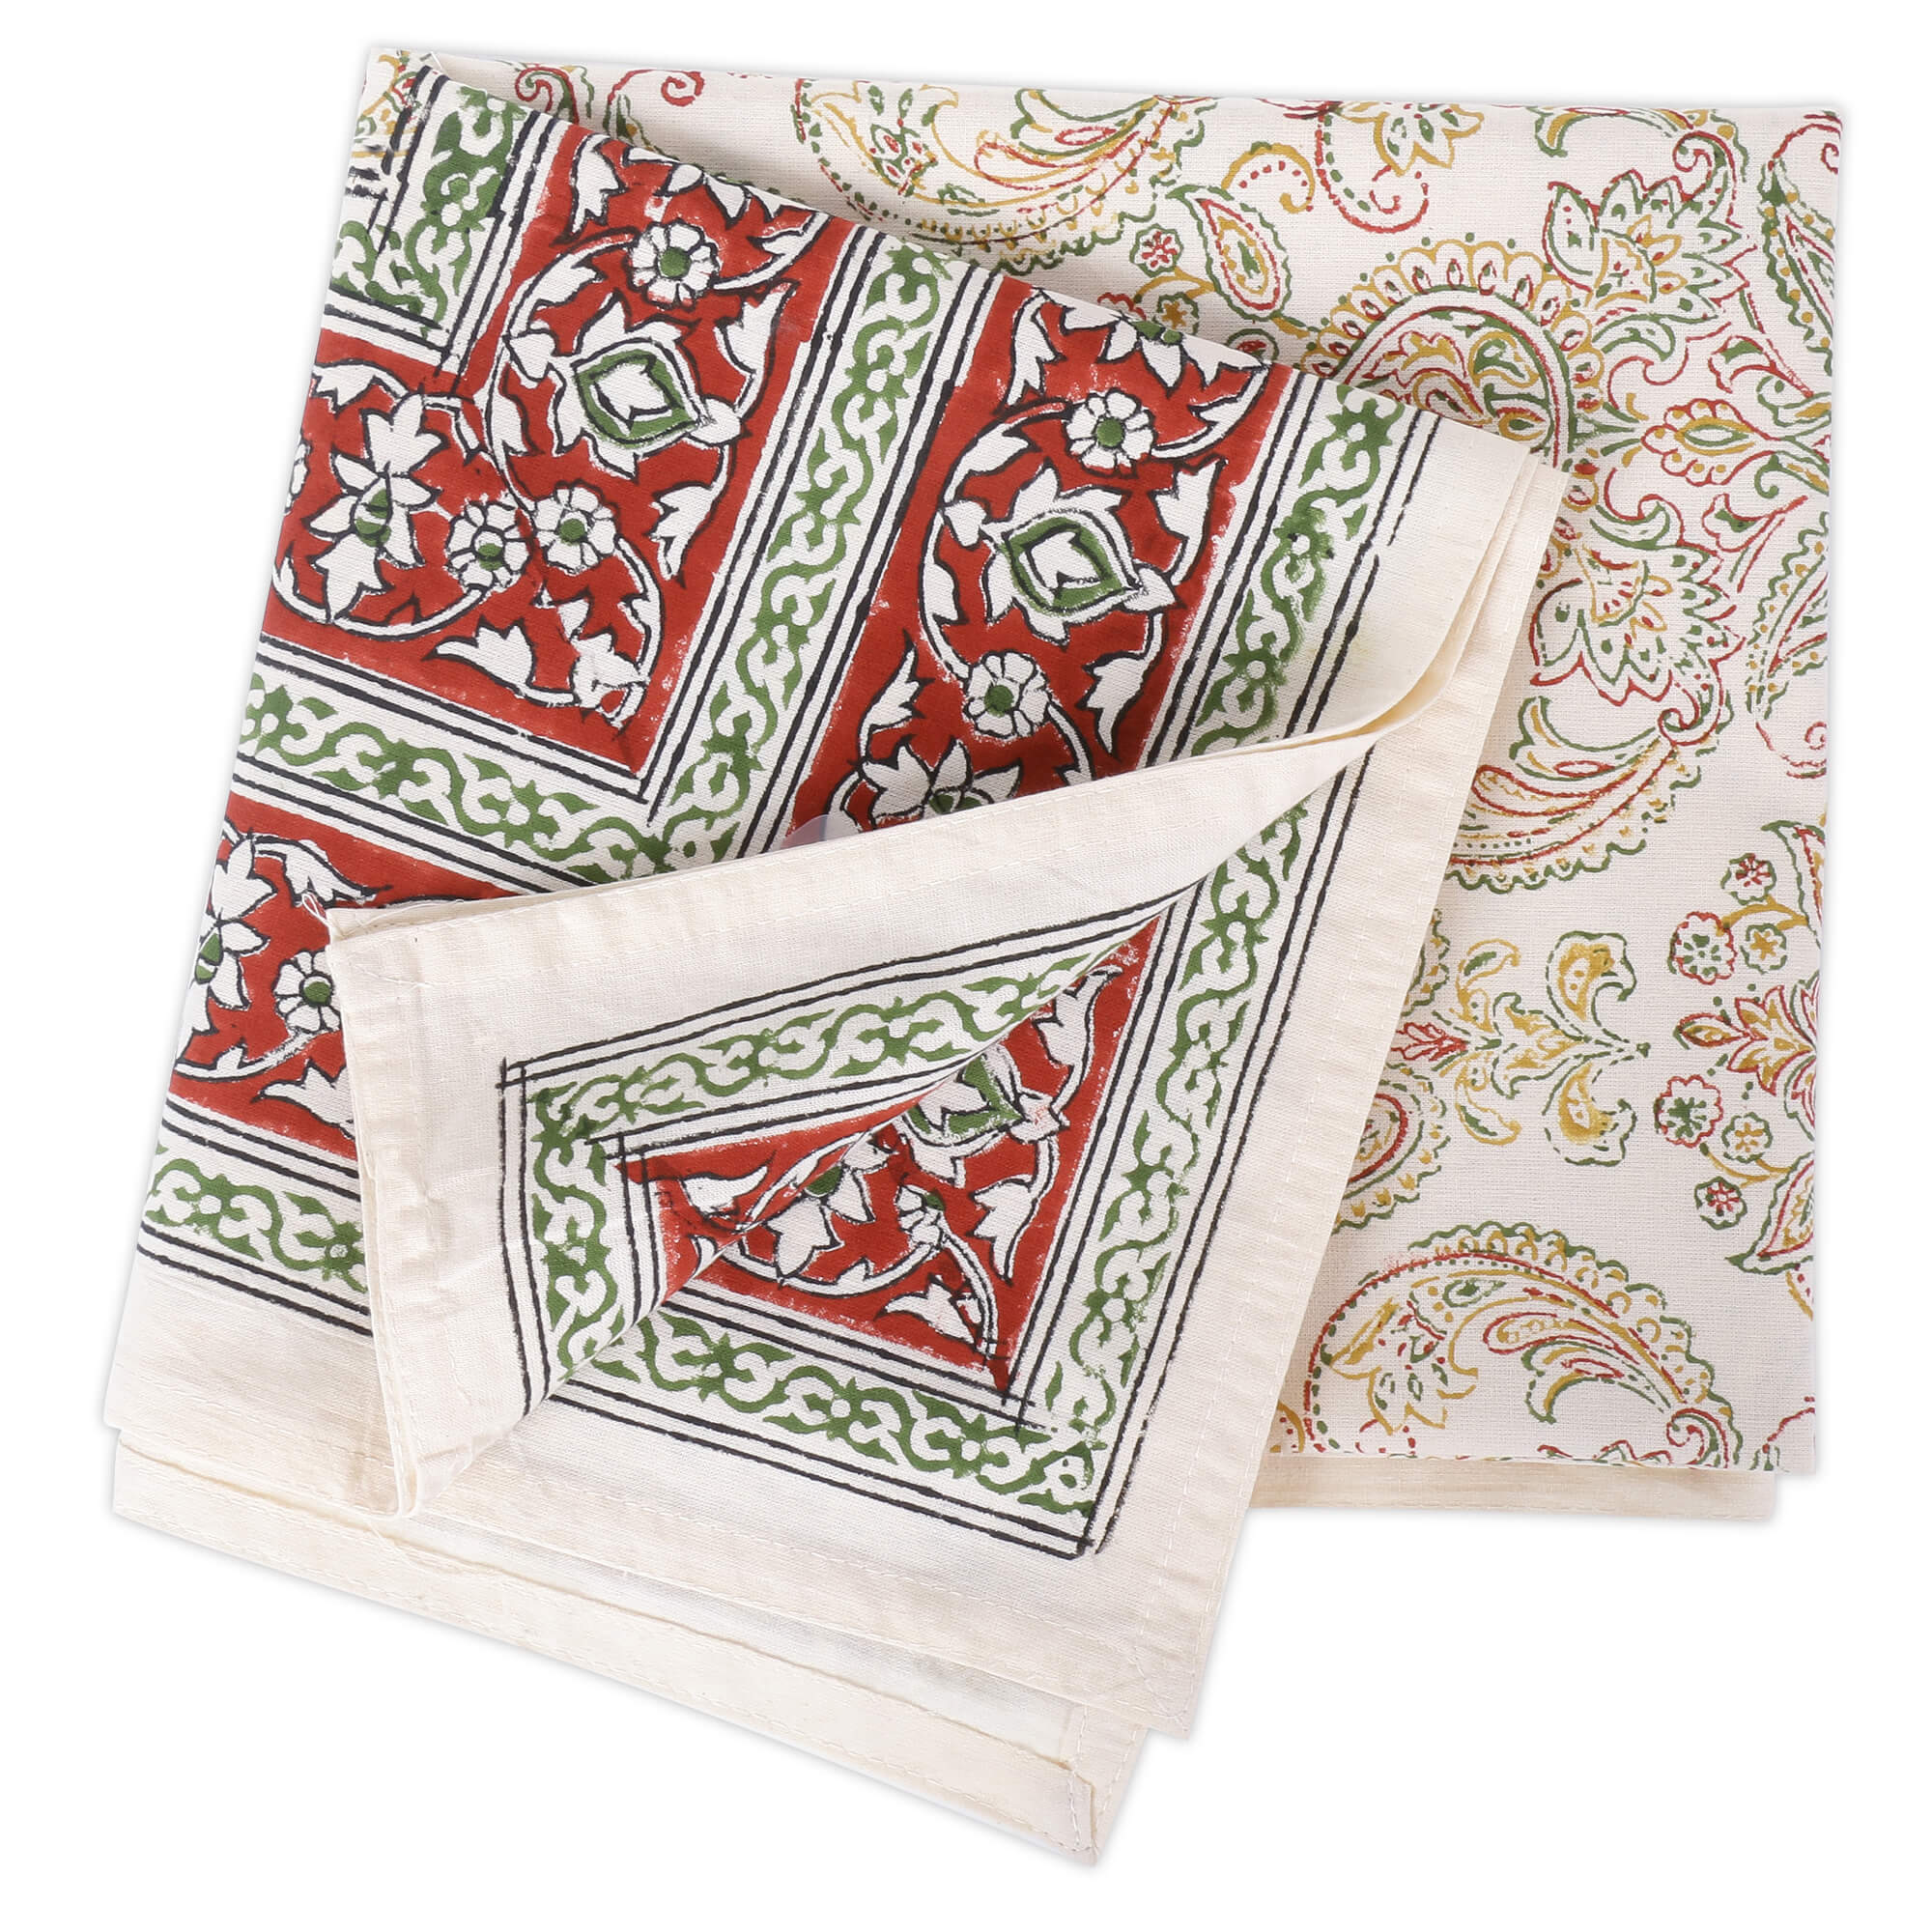 Jaipuri Square Cotton Table Cover - 7875